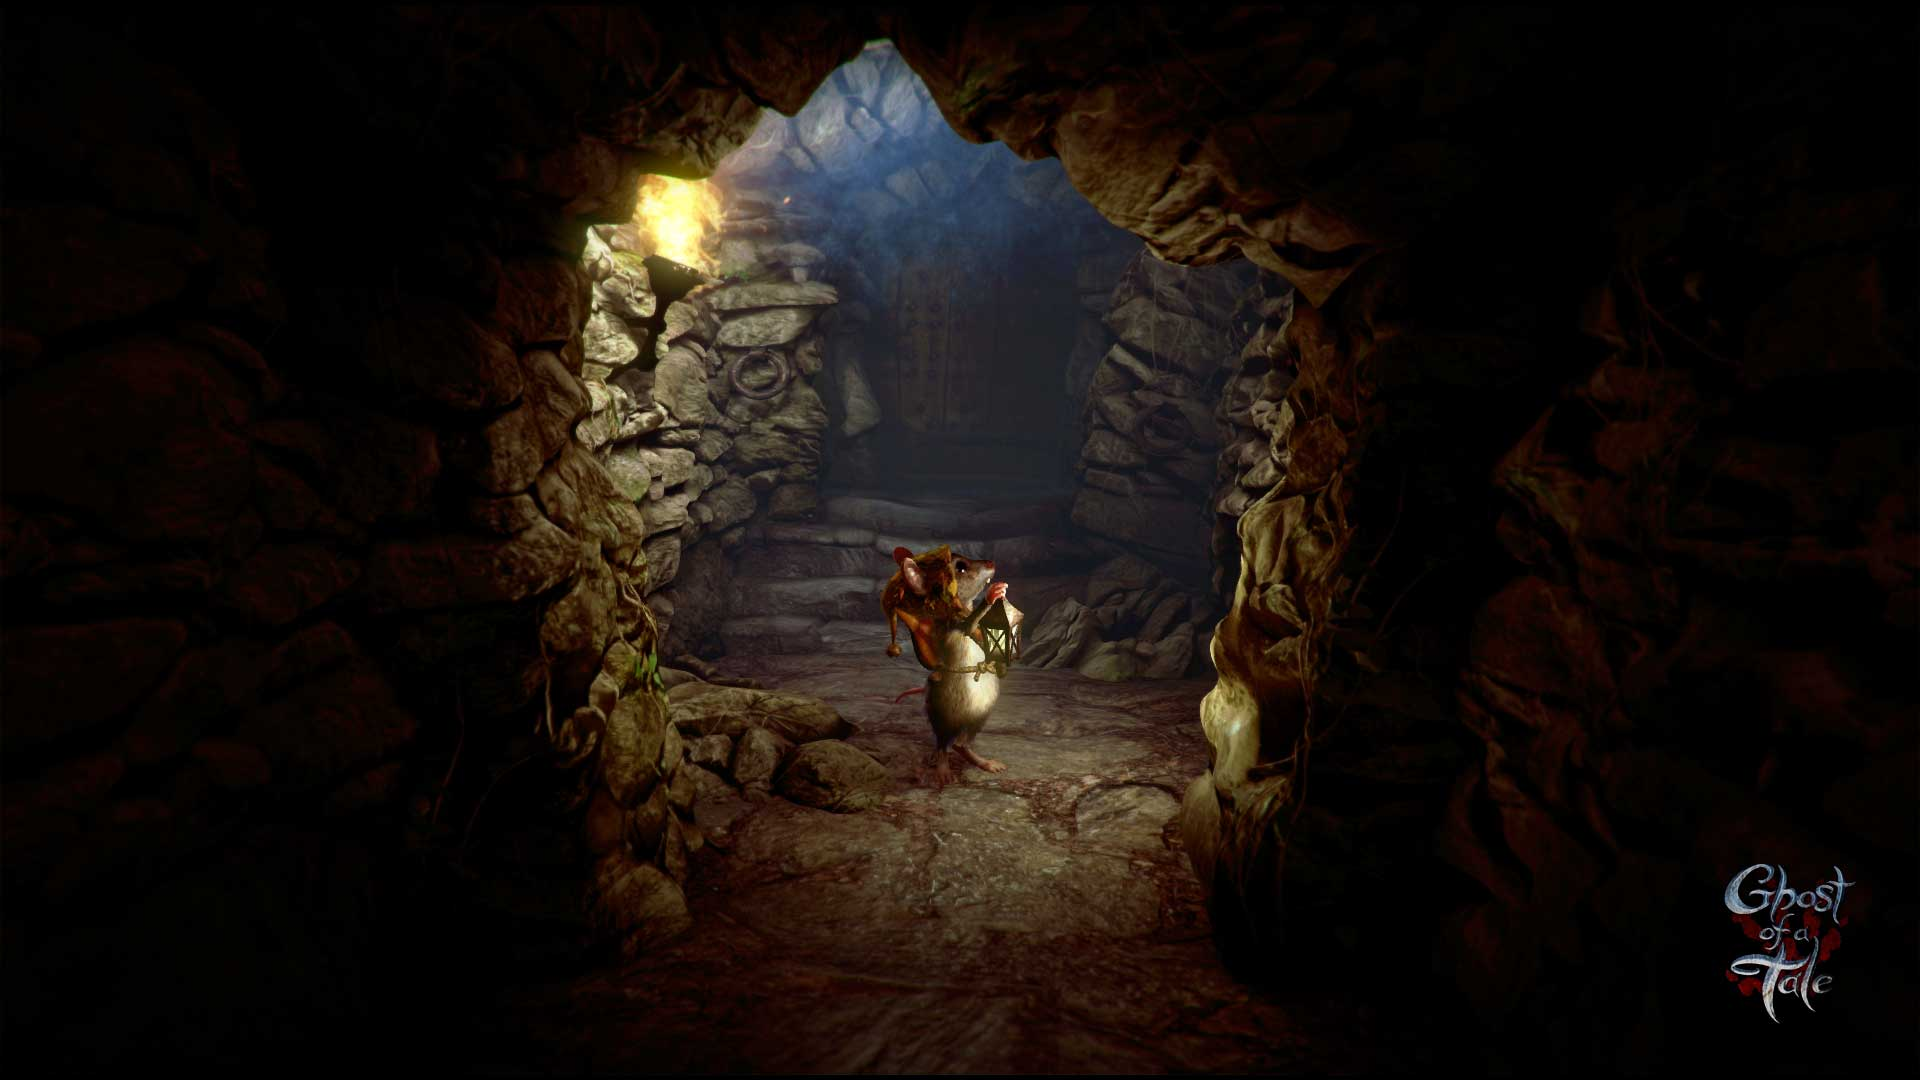 Ghost of a Tale – Anteprima